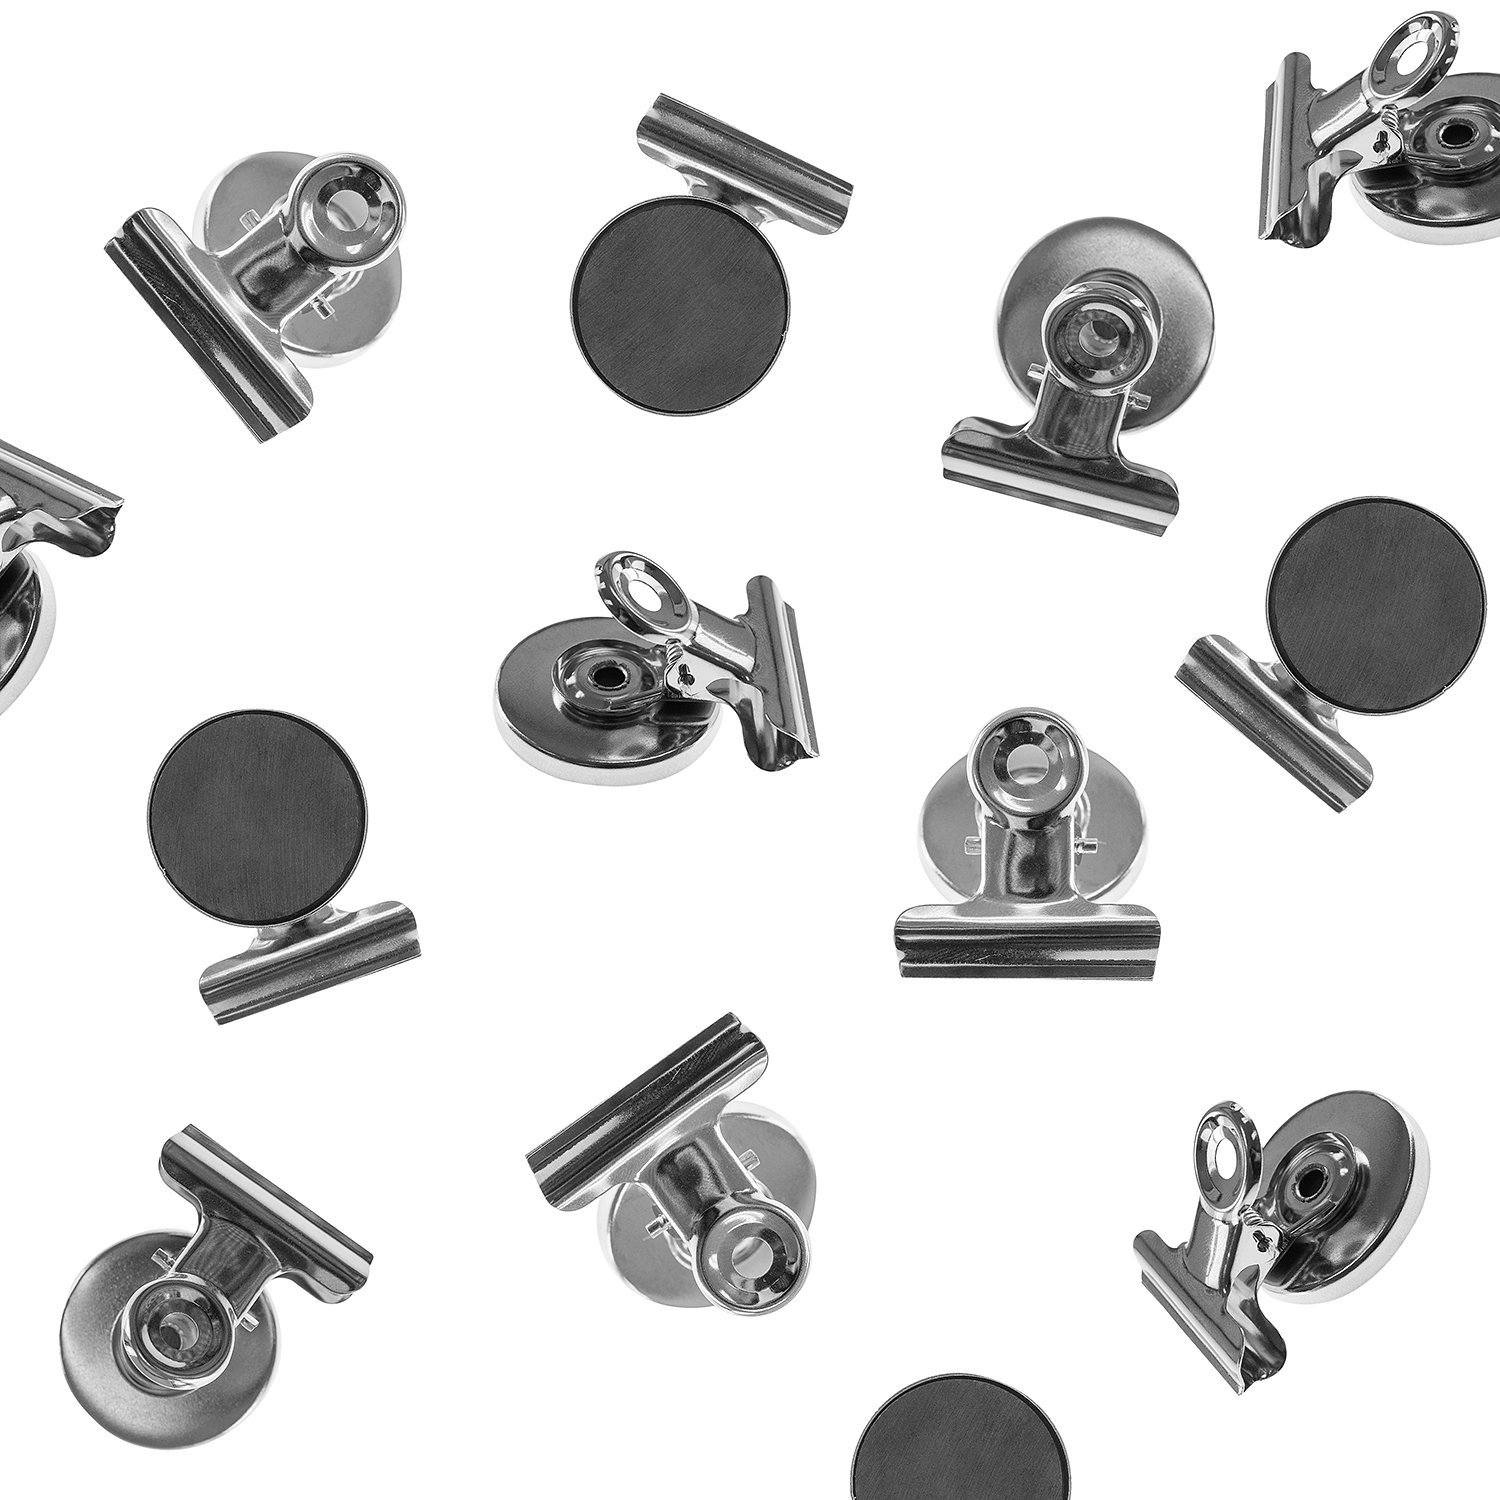 Heavy Duty Mini Silver Refrigerator Magnet Hook Clips for Photo Displays (8 Pack) by Super Z Outlet